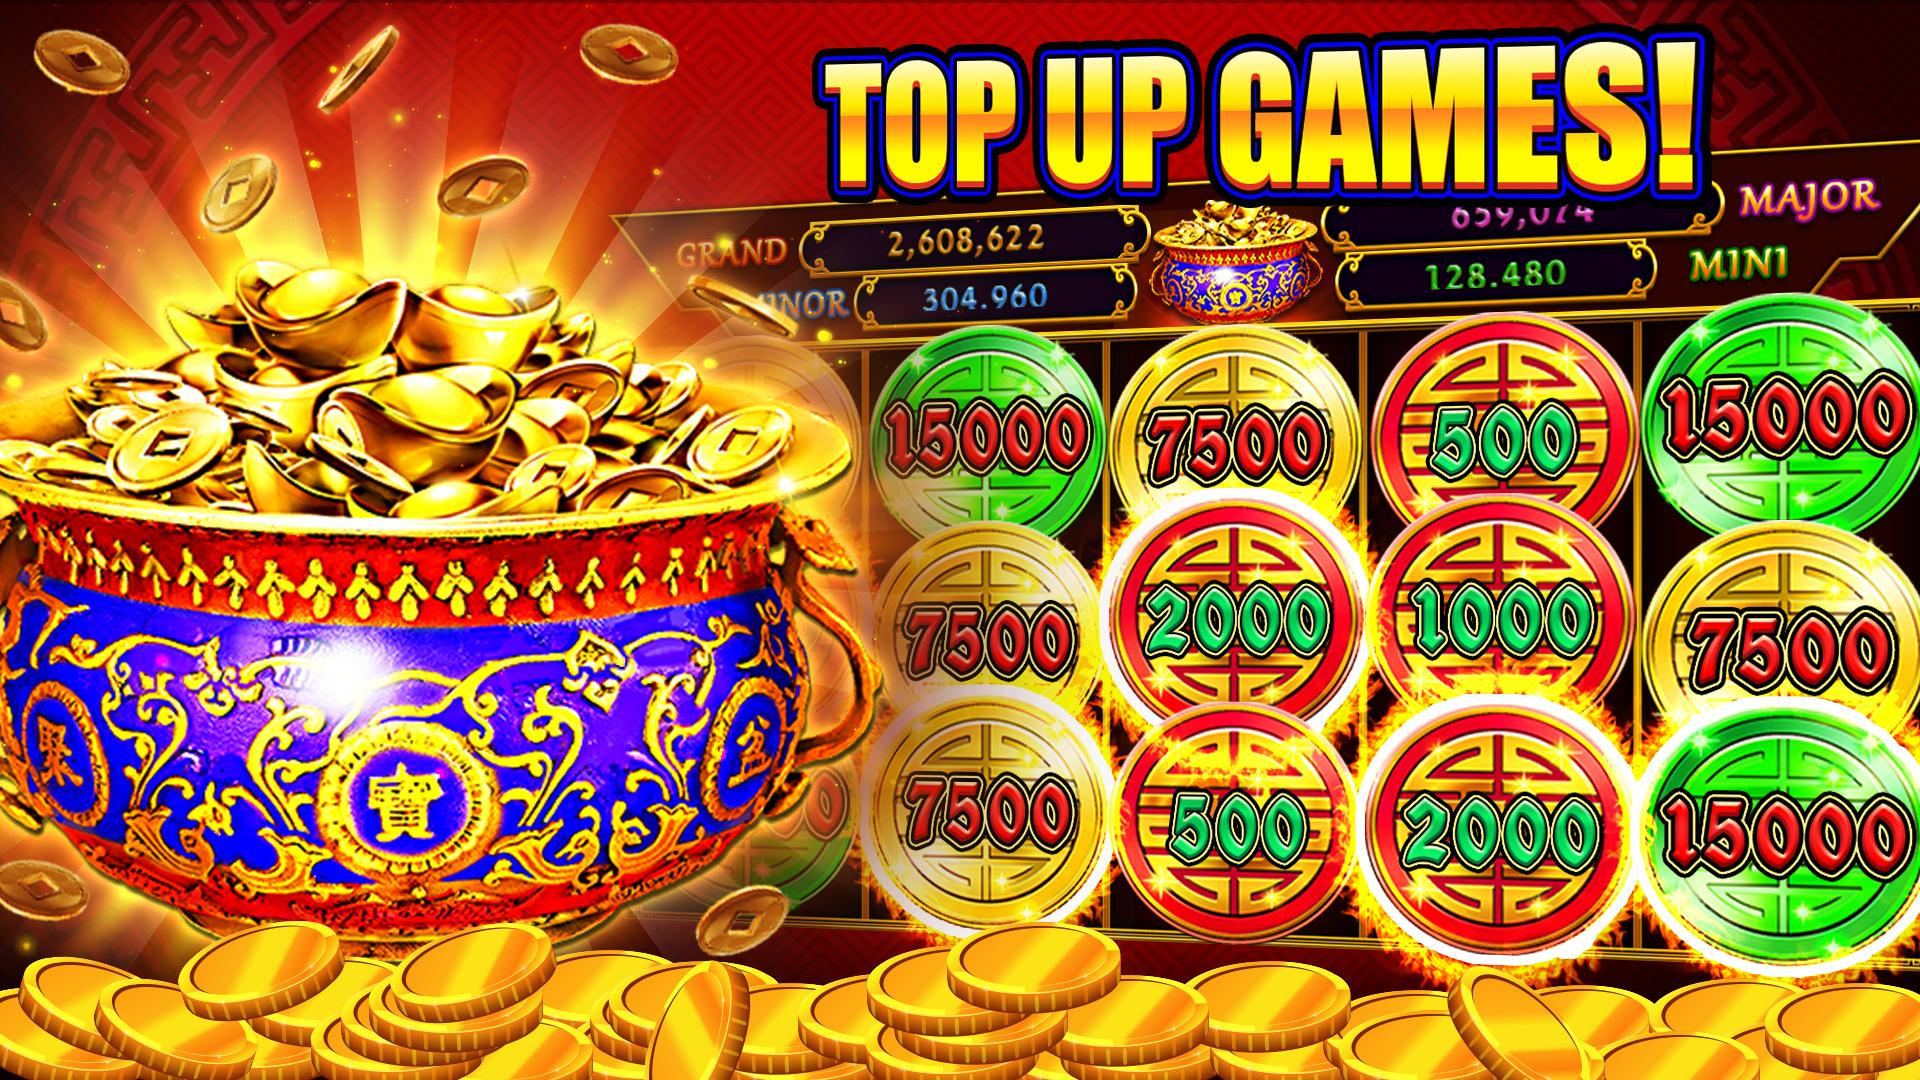 Vegas Casino Slots 2020 - 2,000,000 Free Coins 1.0.34 Screenshot 17